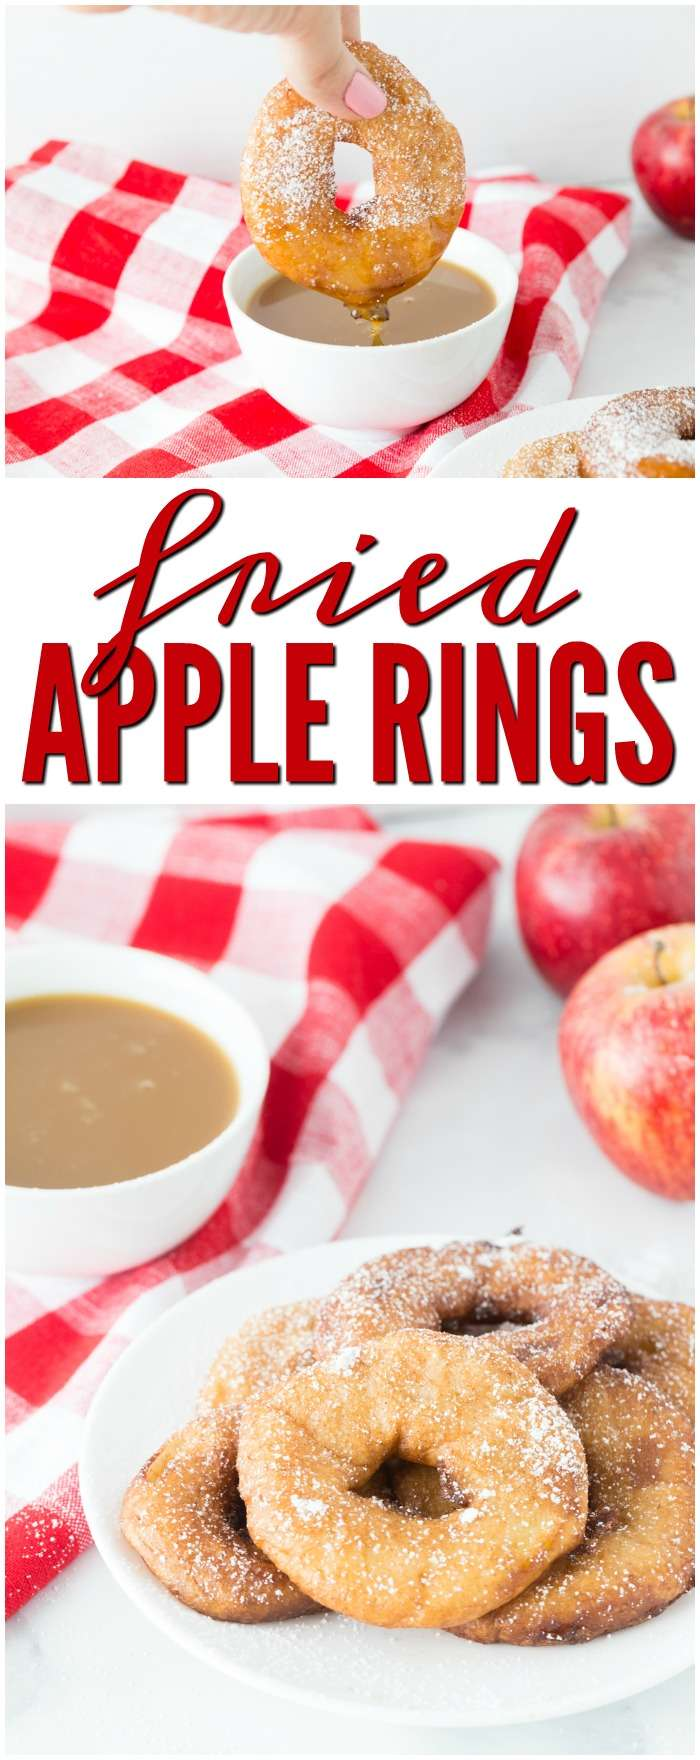 Inspiring Savings Luck S Fried Apples Recipes Fried Apples Recipe Epicurious Fall Fried Apple Easy Snack Recipe Apple Treats Yourkids Fried Apple Rings Passion nice food Fried Apples Recipe